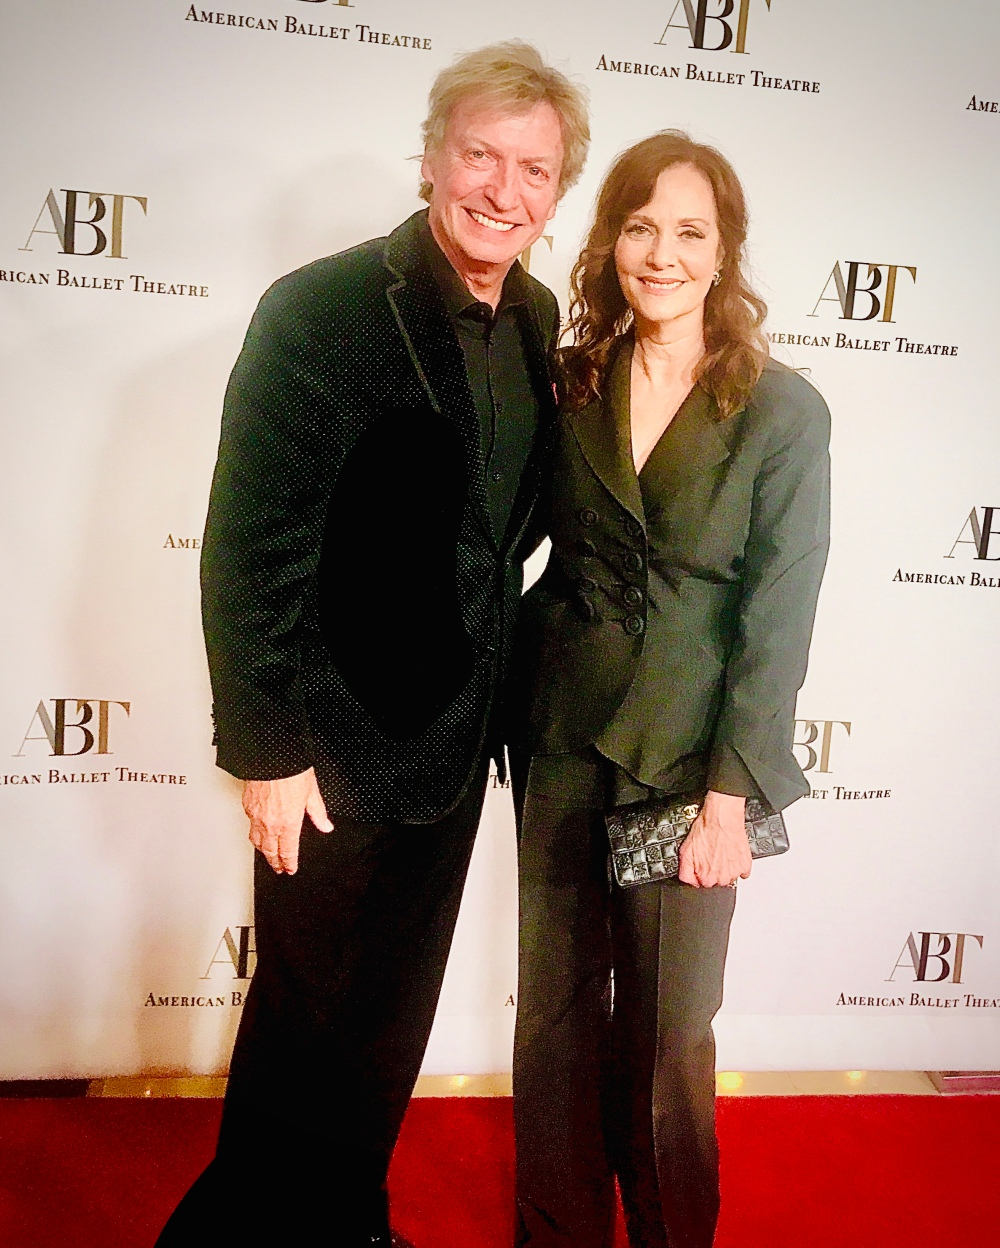 IMG_2466-2 Nigel Lythgoe and Lesley Ann Warren – Photo by Jill Weinlein